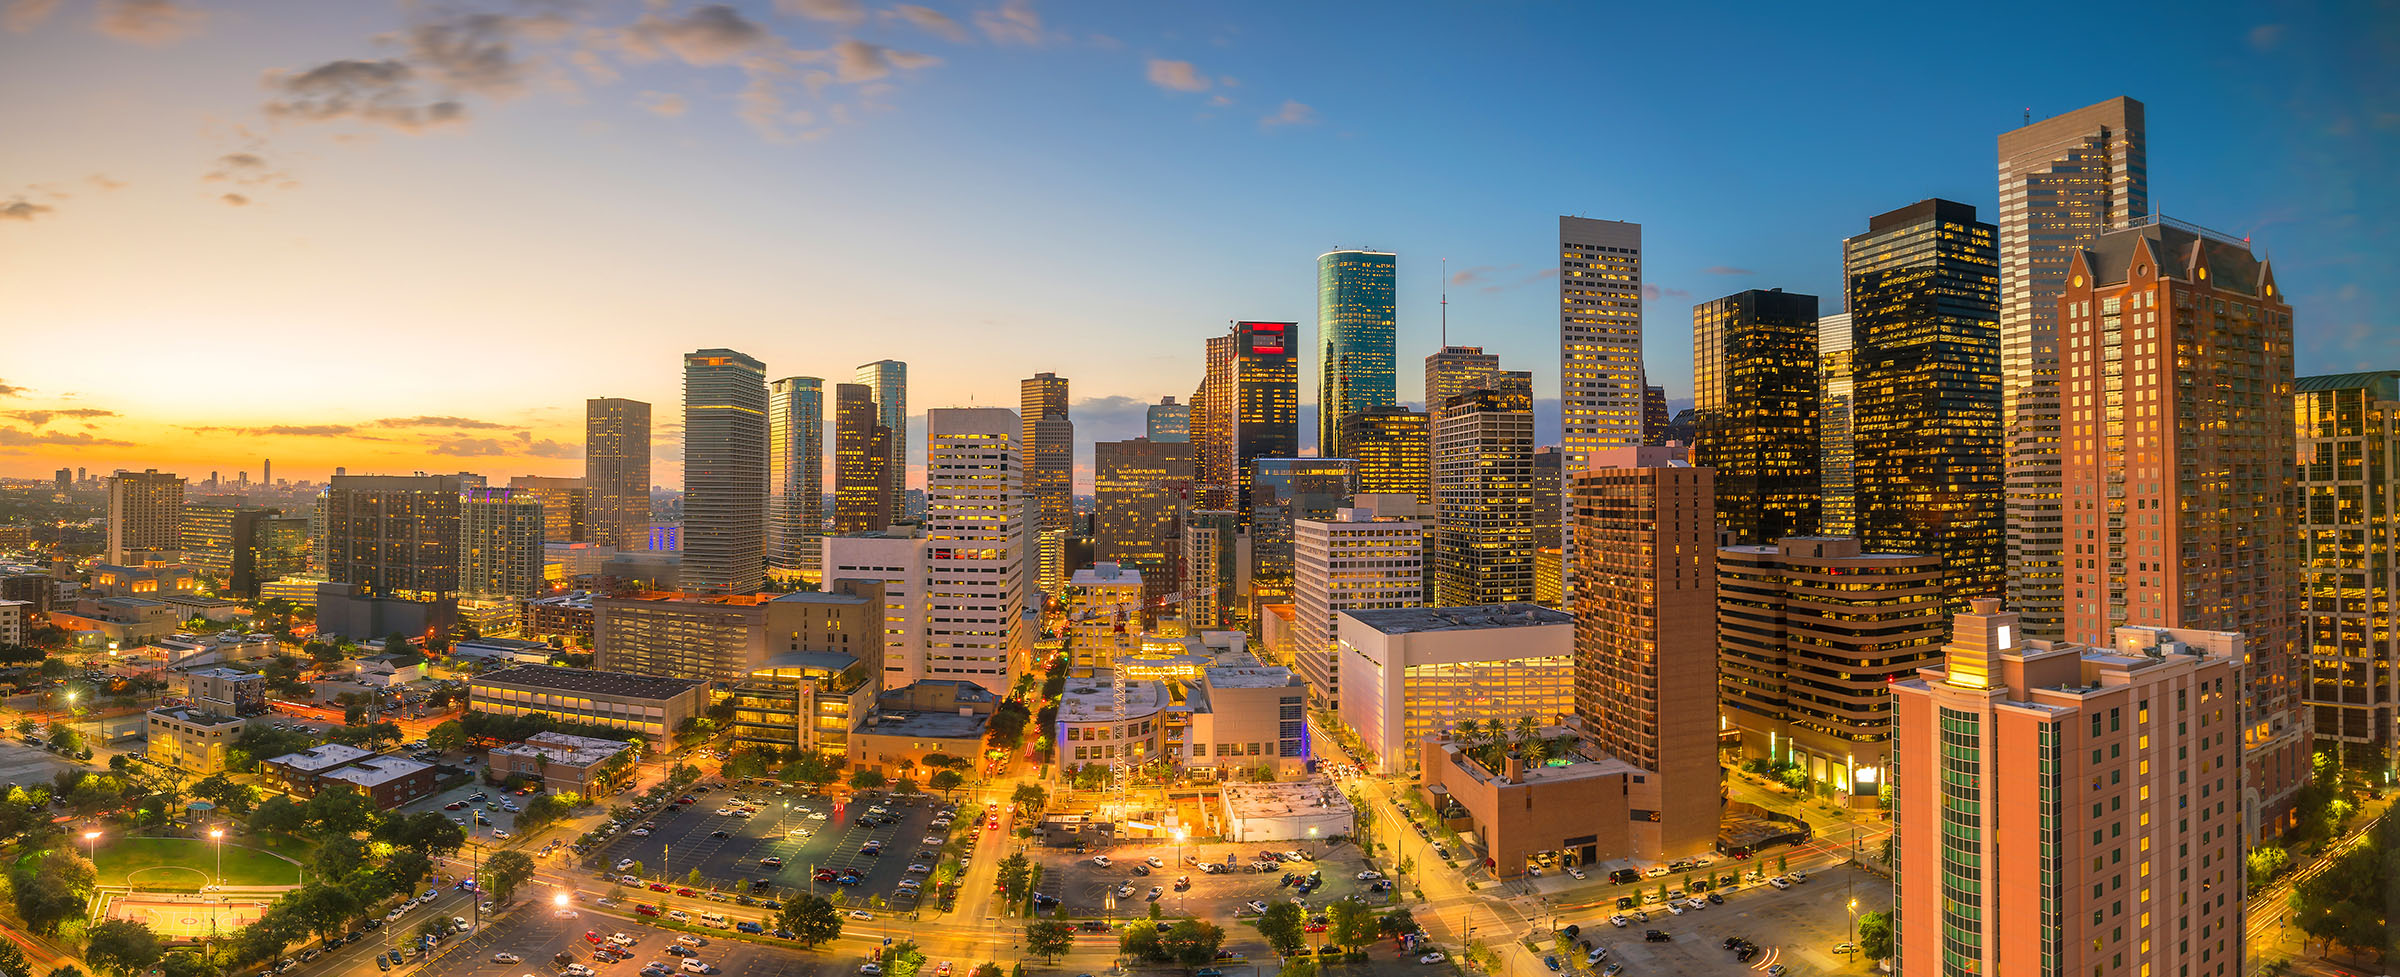 an evening view of the City of Houston, Texas downtown